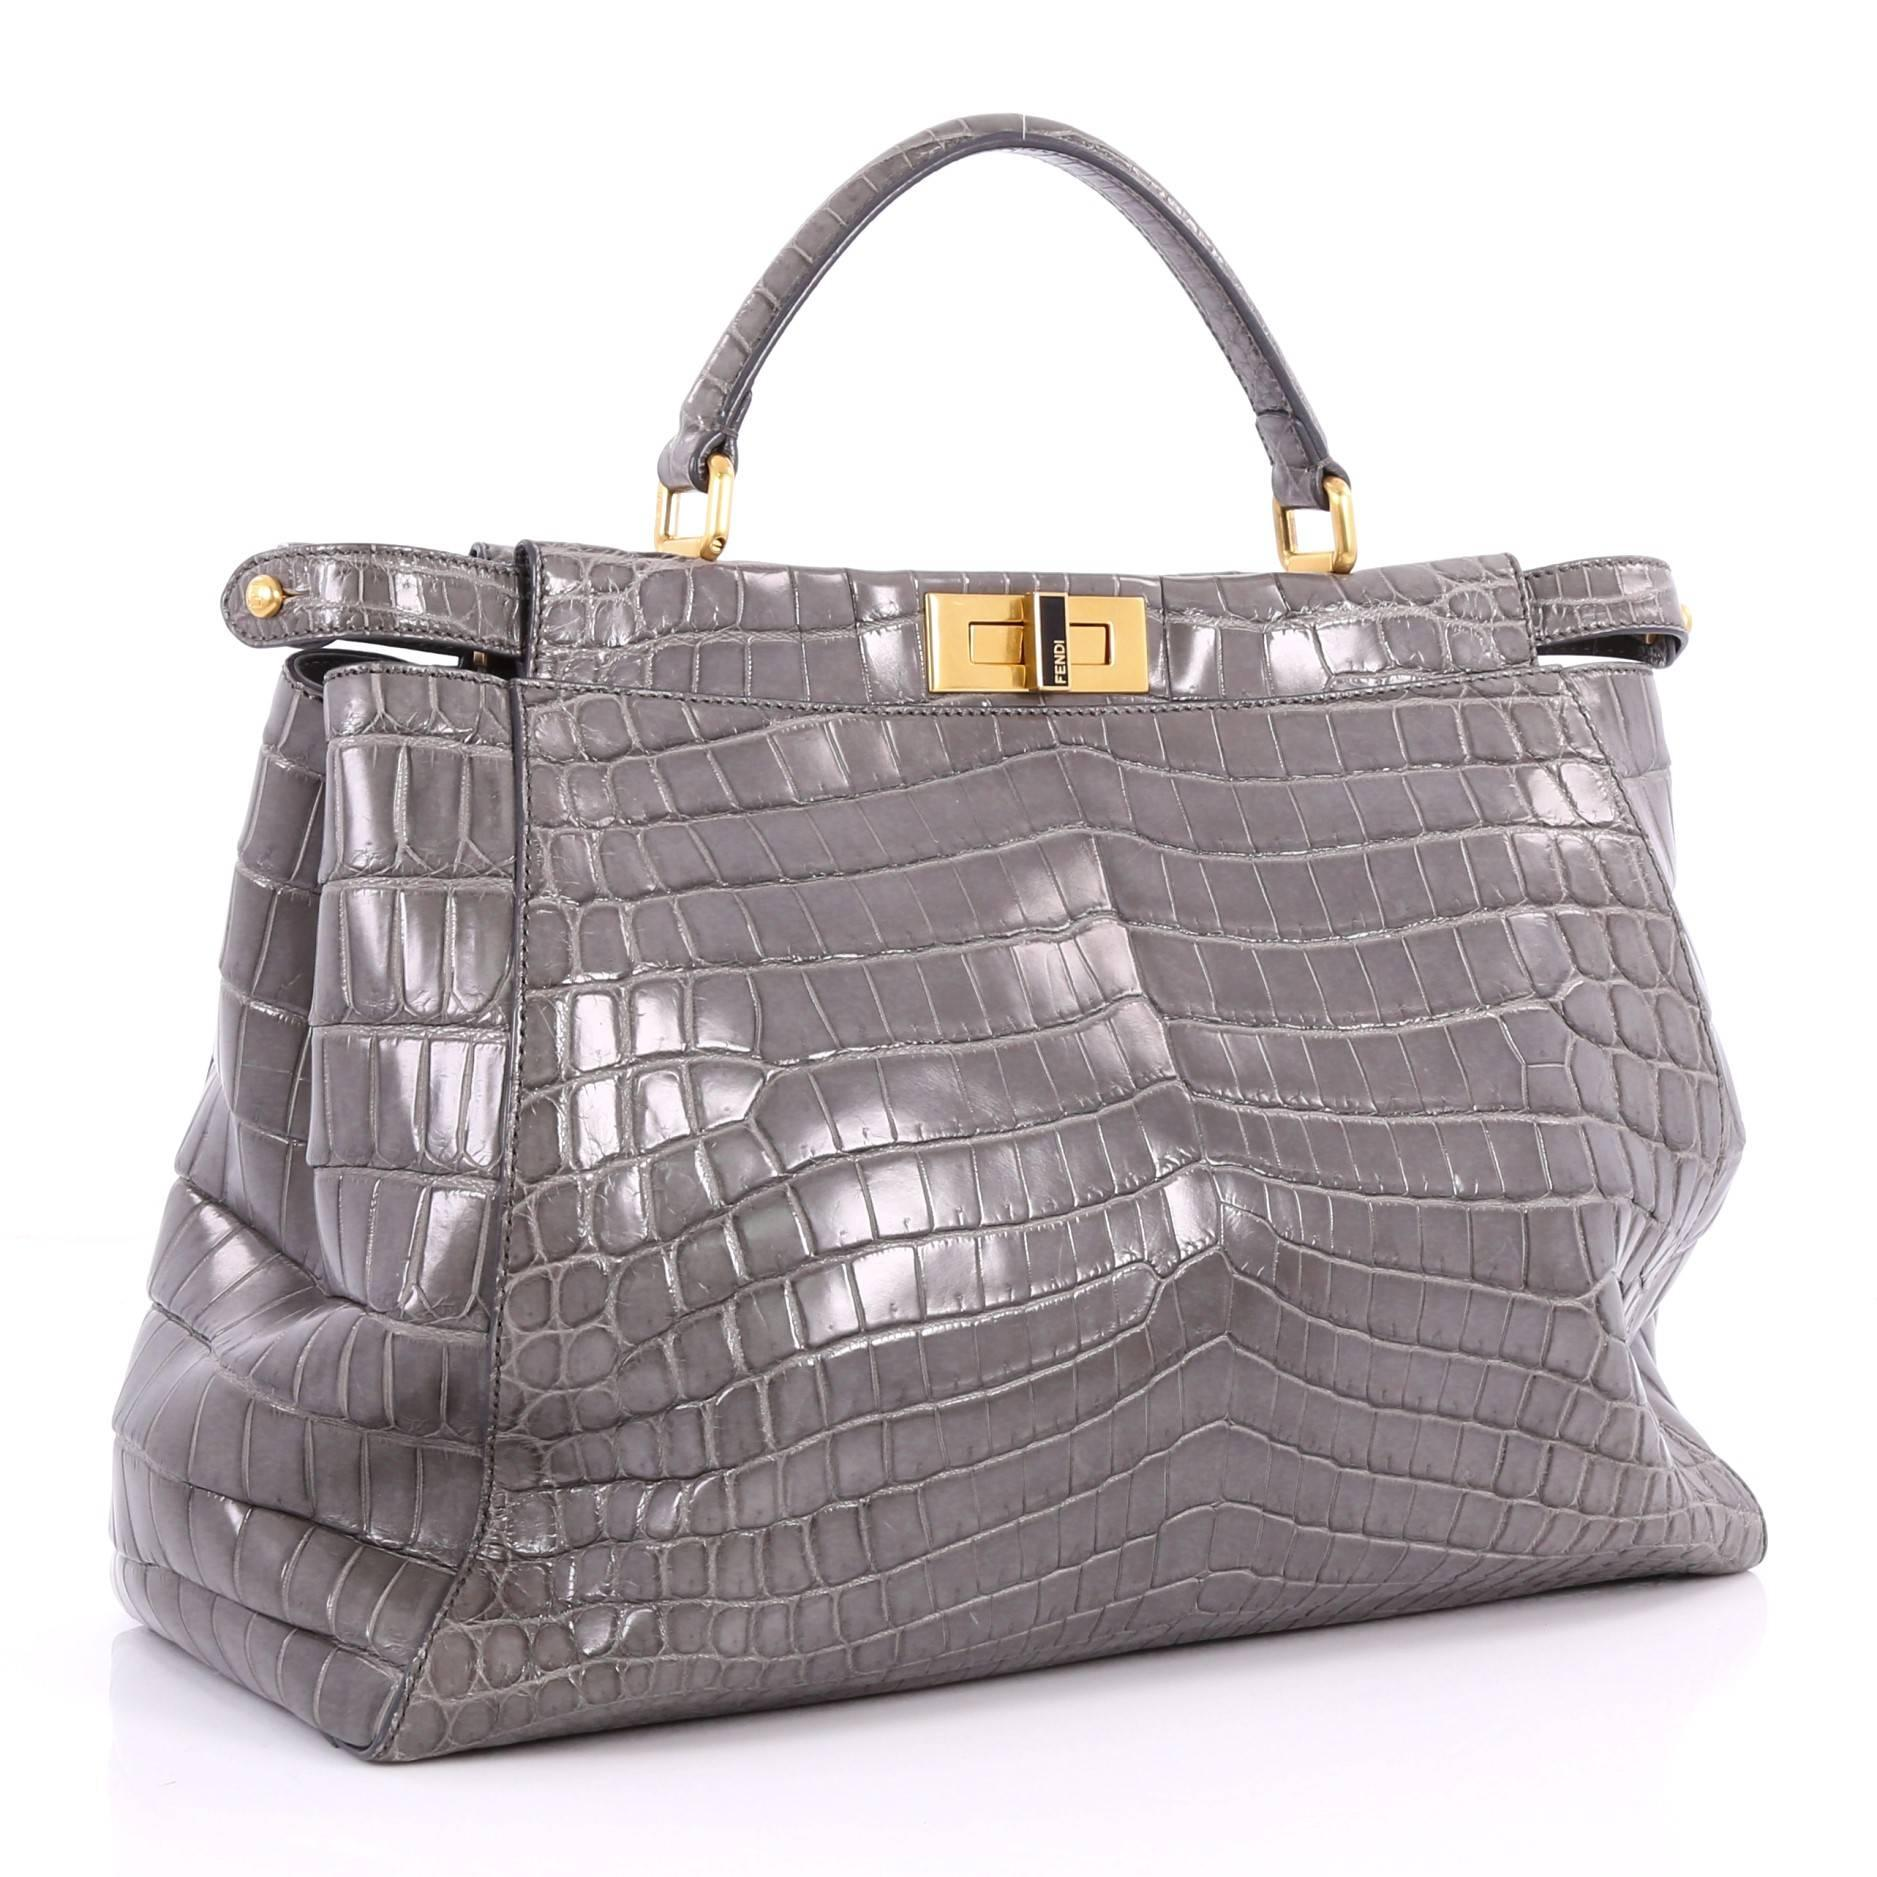 3404e5007c63 Fendi Peekaboo Handbag Crocodile Large at 1stdibs